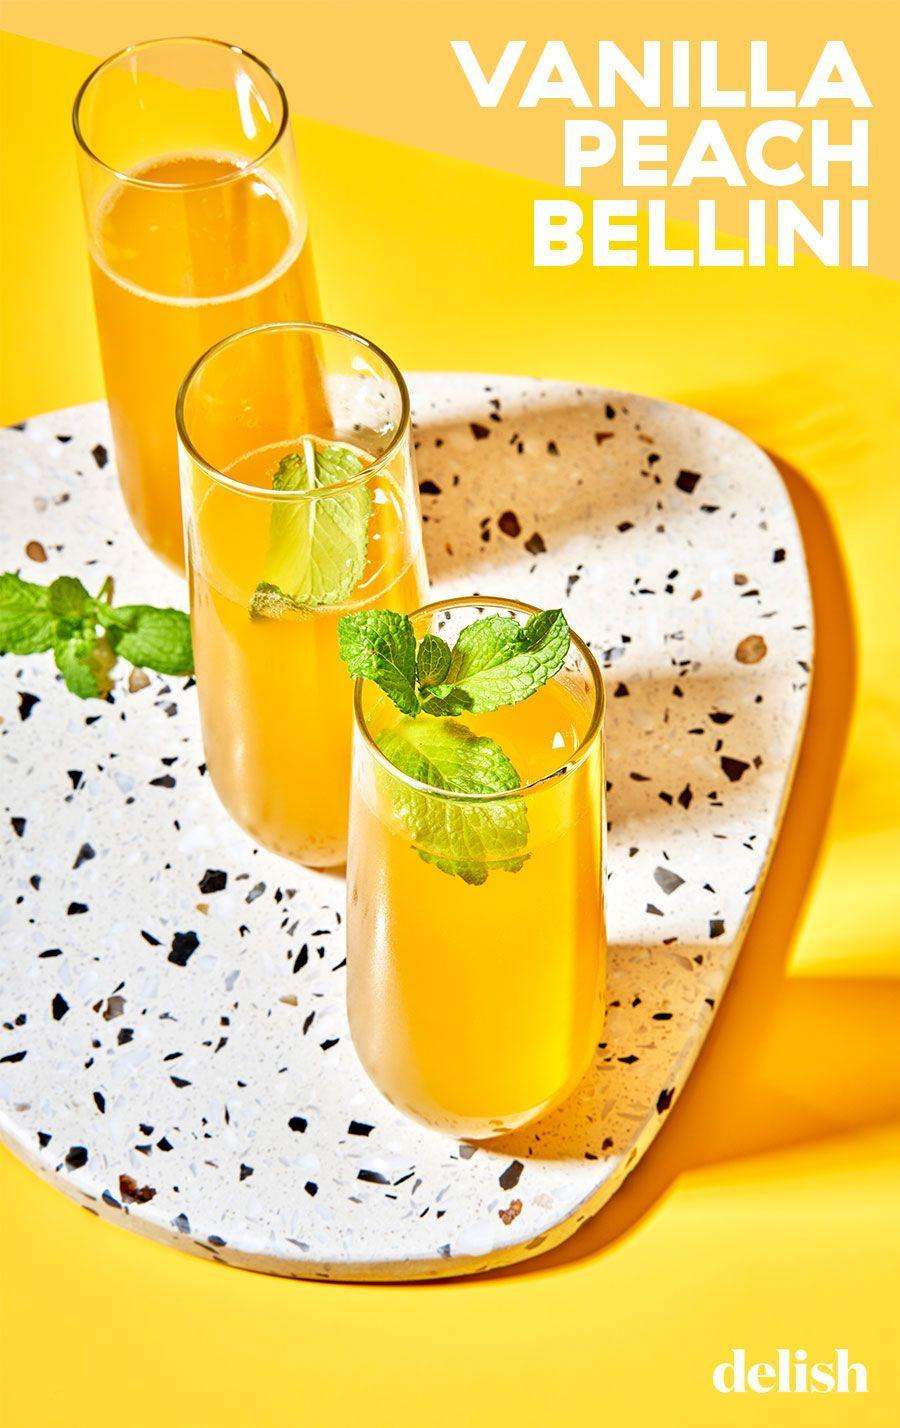 """<p>Buy her the ingredients to have a boozy brunch at home.</p><p><a class=""""link rapid-noclick-resp"""" href=""""https://www.delish.com/cooking/g55/brunch-cocktail-recipes/"""" rel=""""nofollow noopener"""" target=""""_blank"""" data-ylk=""""slk:FIND BRUNCH COCKTAILS"""">FIND BRUNCH COCKTAILS</a> </p>"""